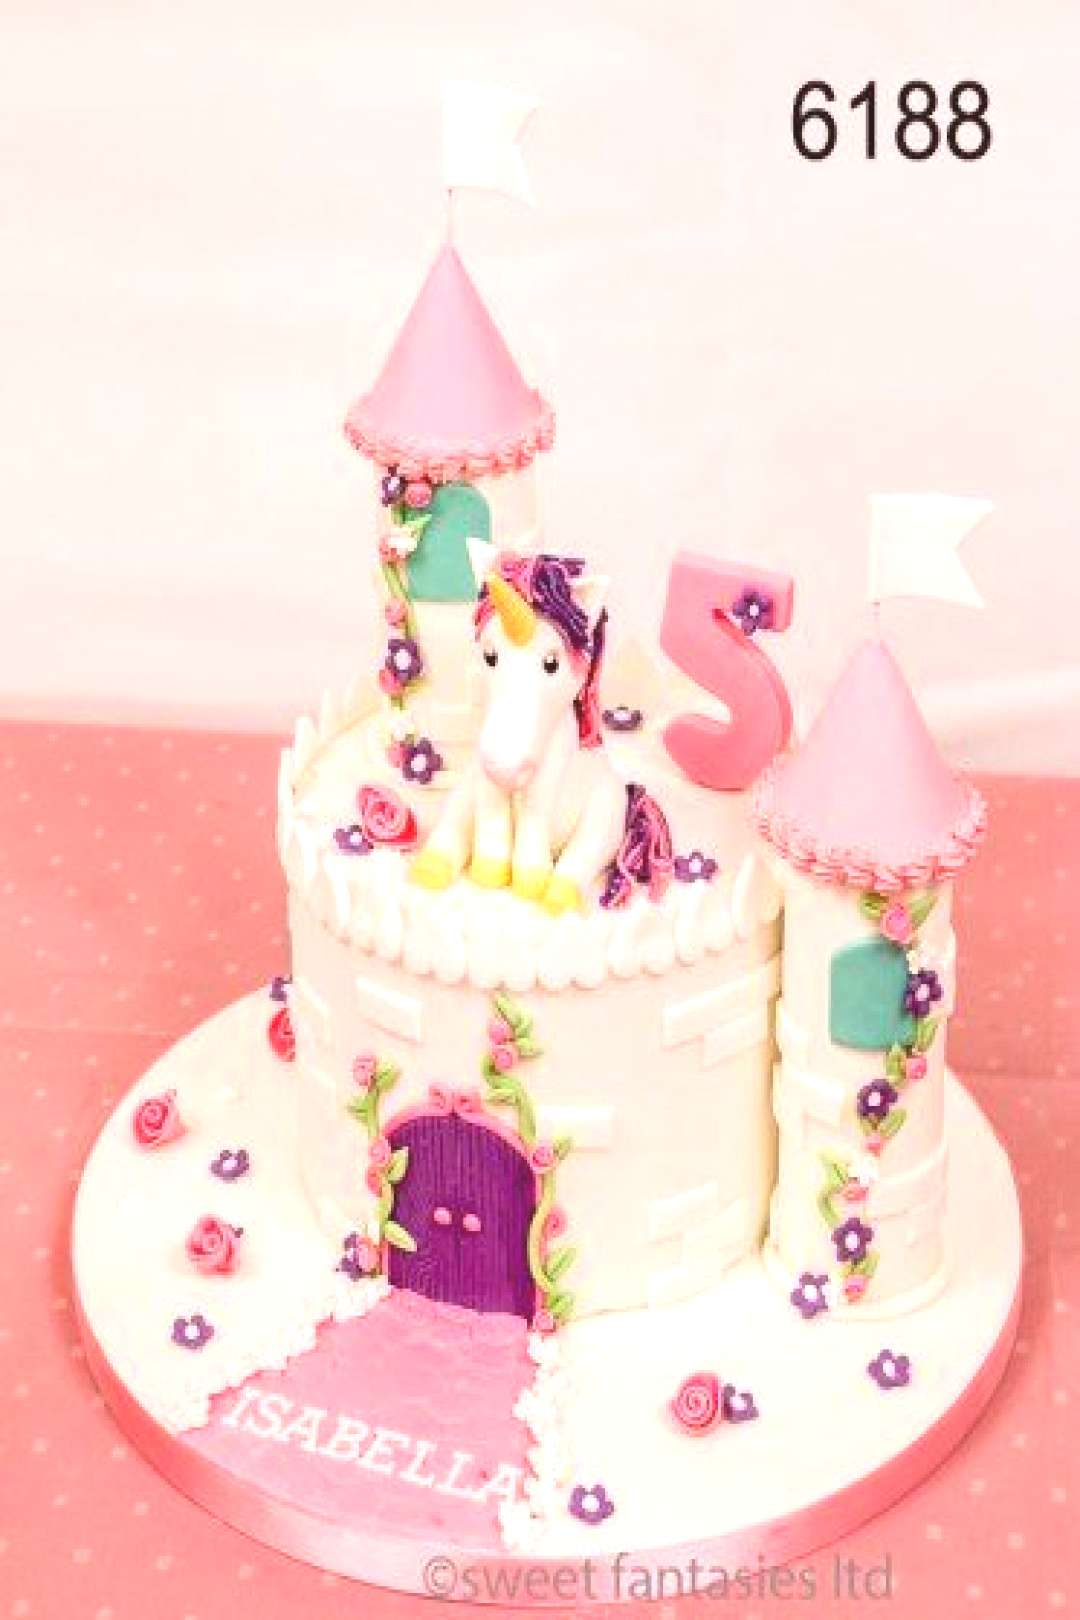 Unicorn Castle 5th Birthday Cake. Cake No. 6188